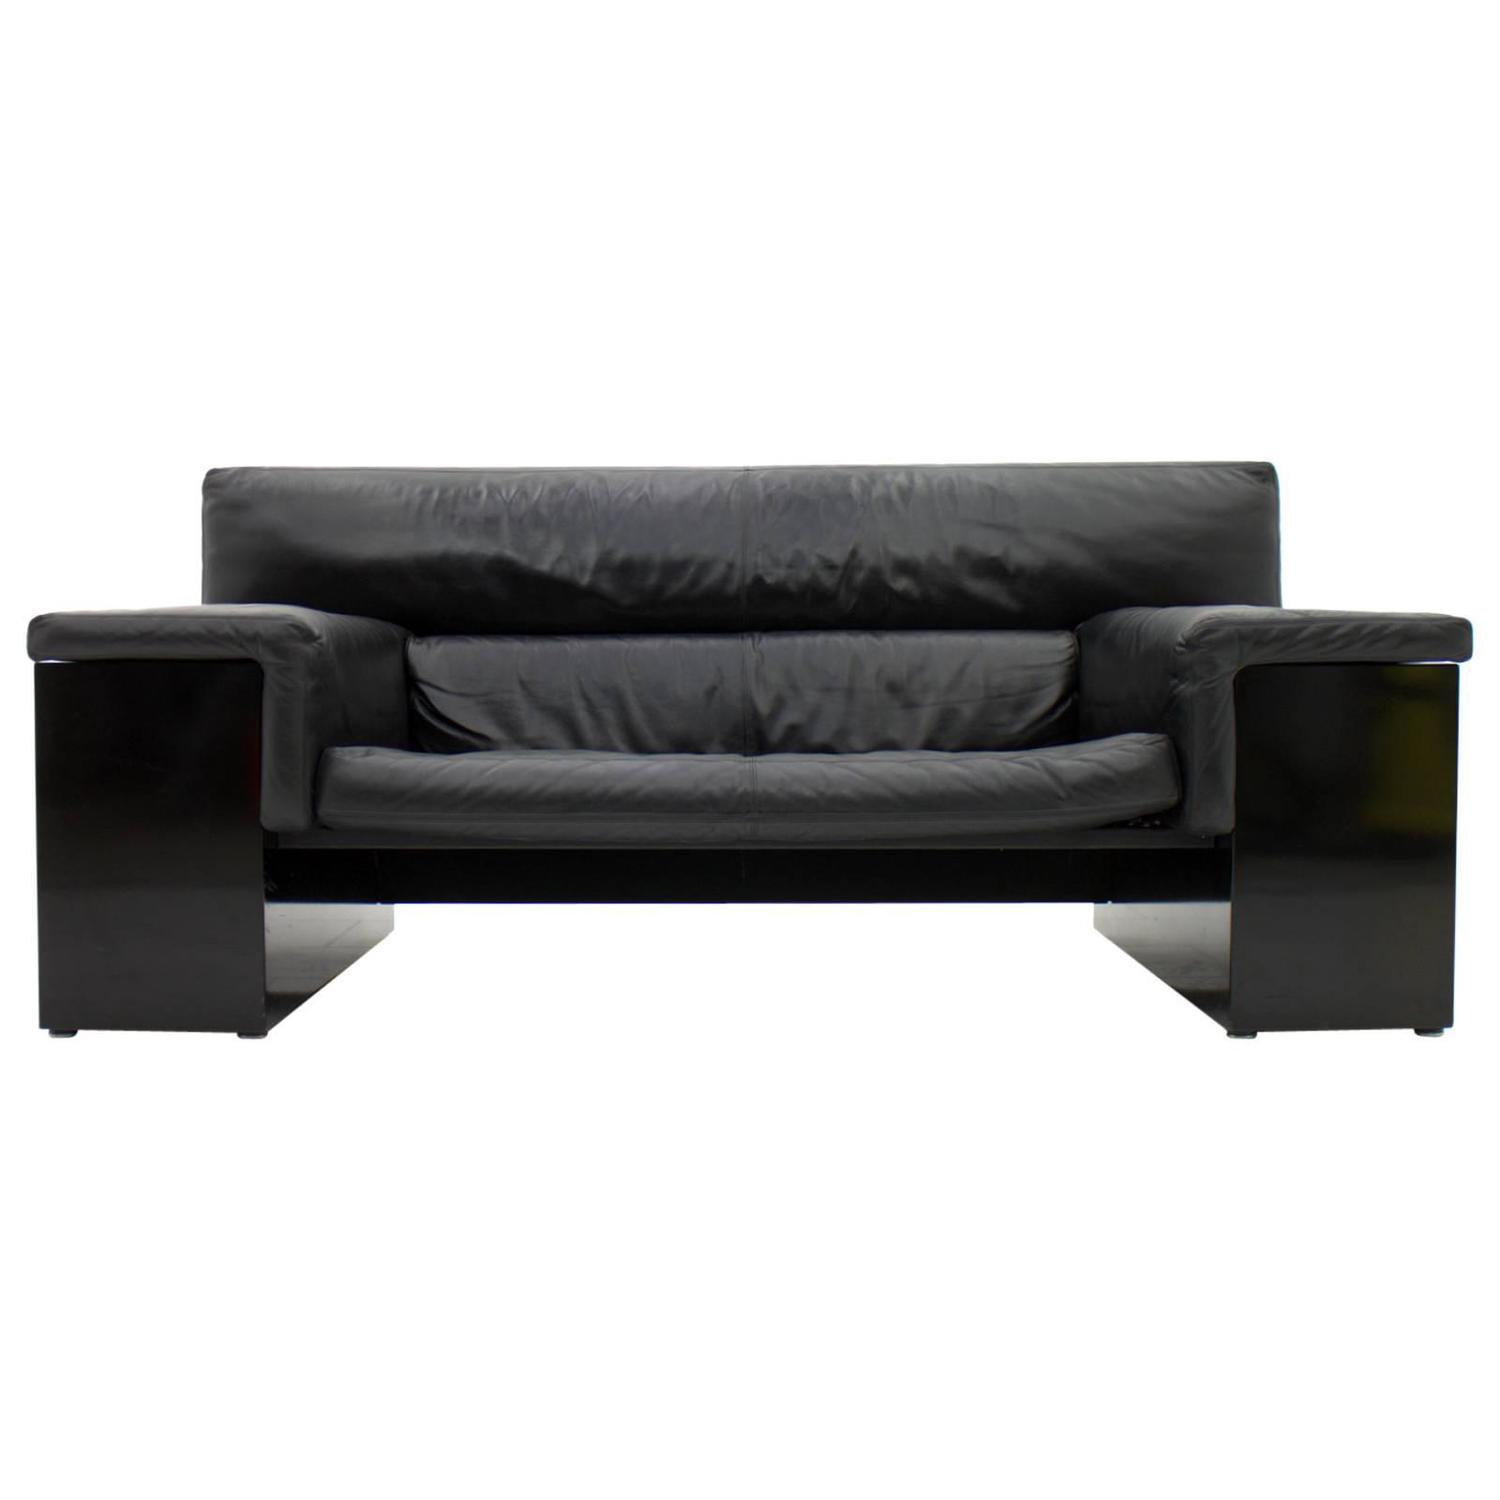 "Two Seater Sofa ""Briga r"" by Cini Boeri for Knoll 1970 s For"